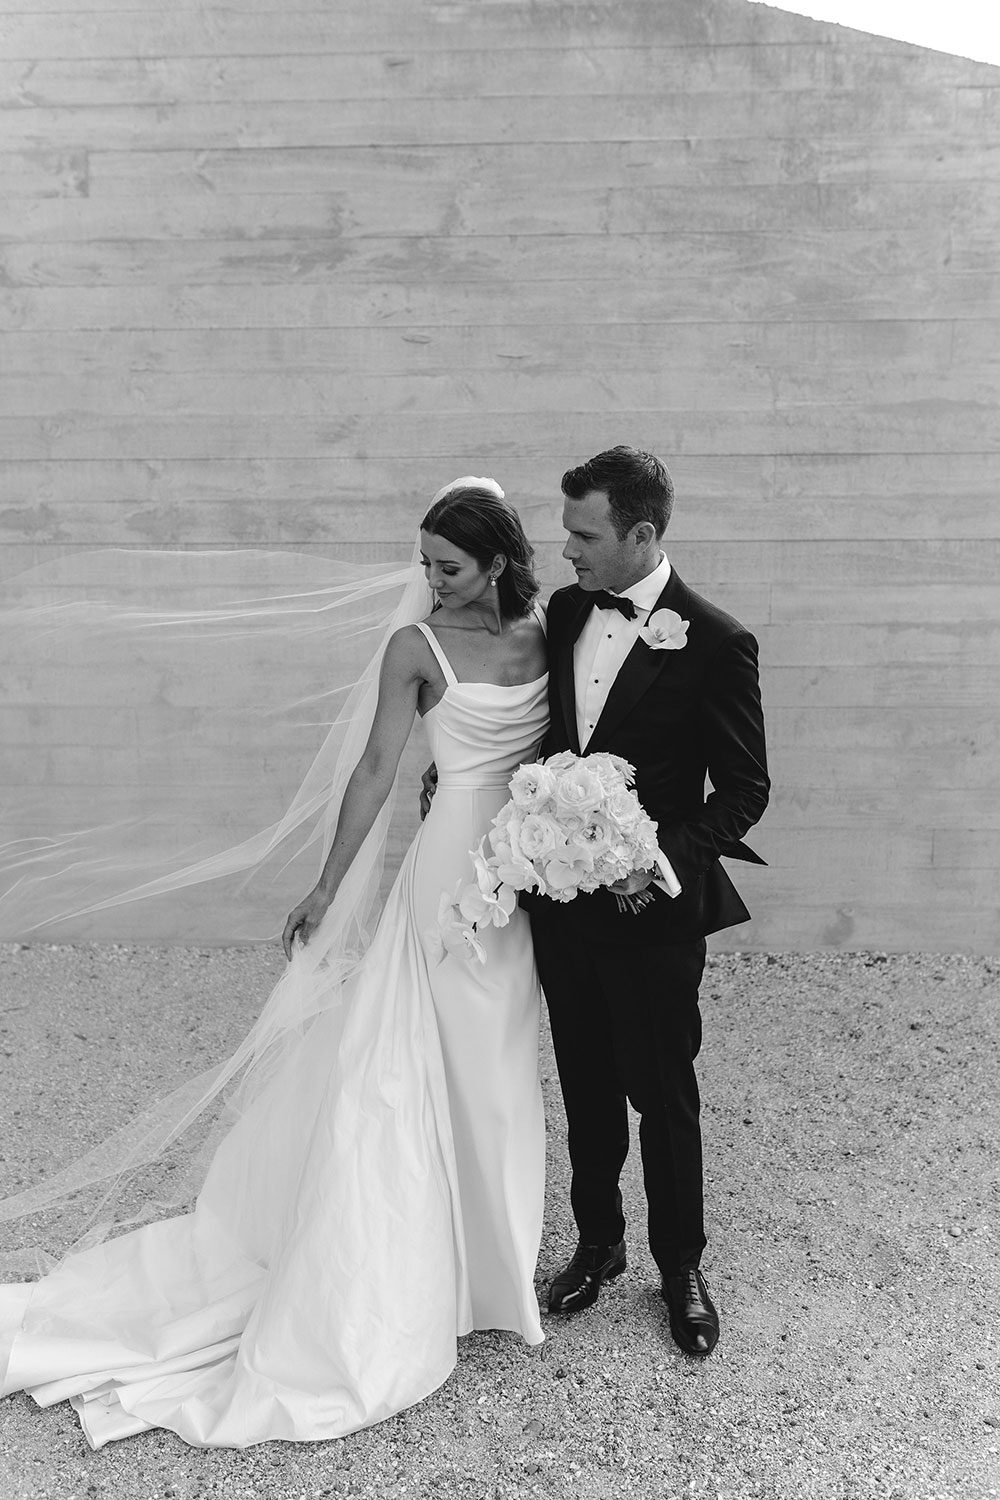 Bride wearing NZ Bespoke Bridal Gown made of silk faile with cowl bodice and detachable overskirt by Vinka Designs - black and white looking to side with groom